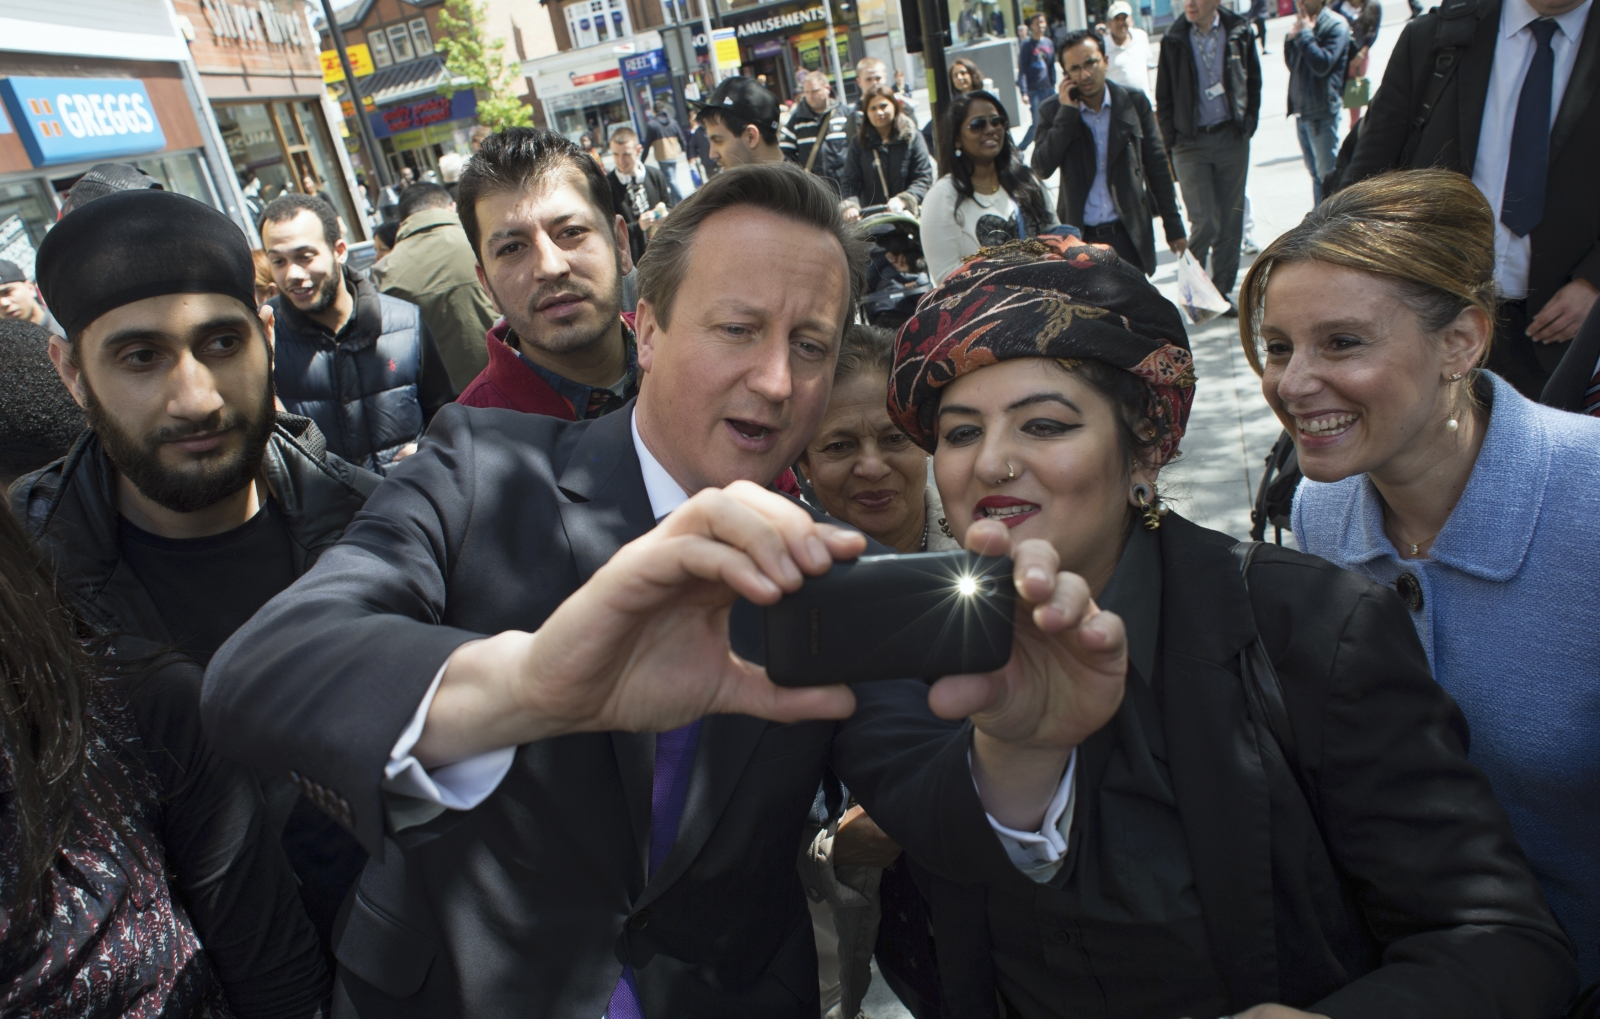 David Cameron taking selfie